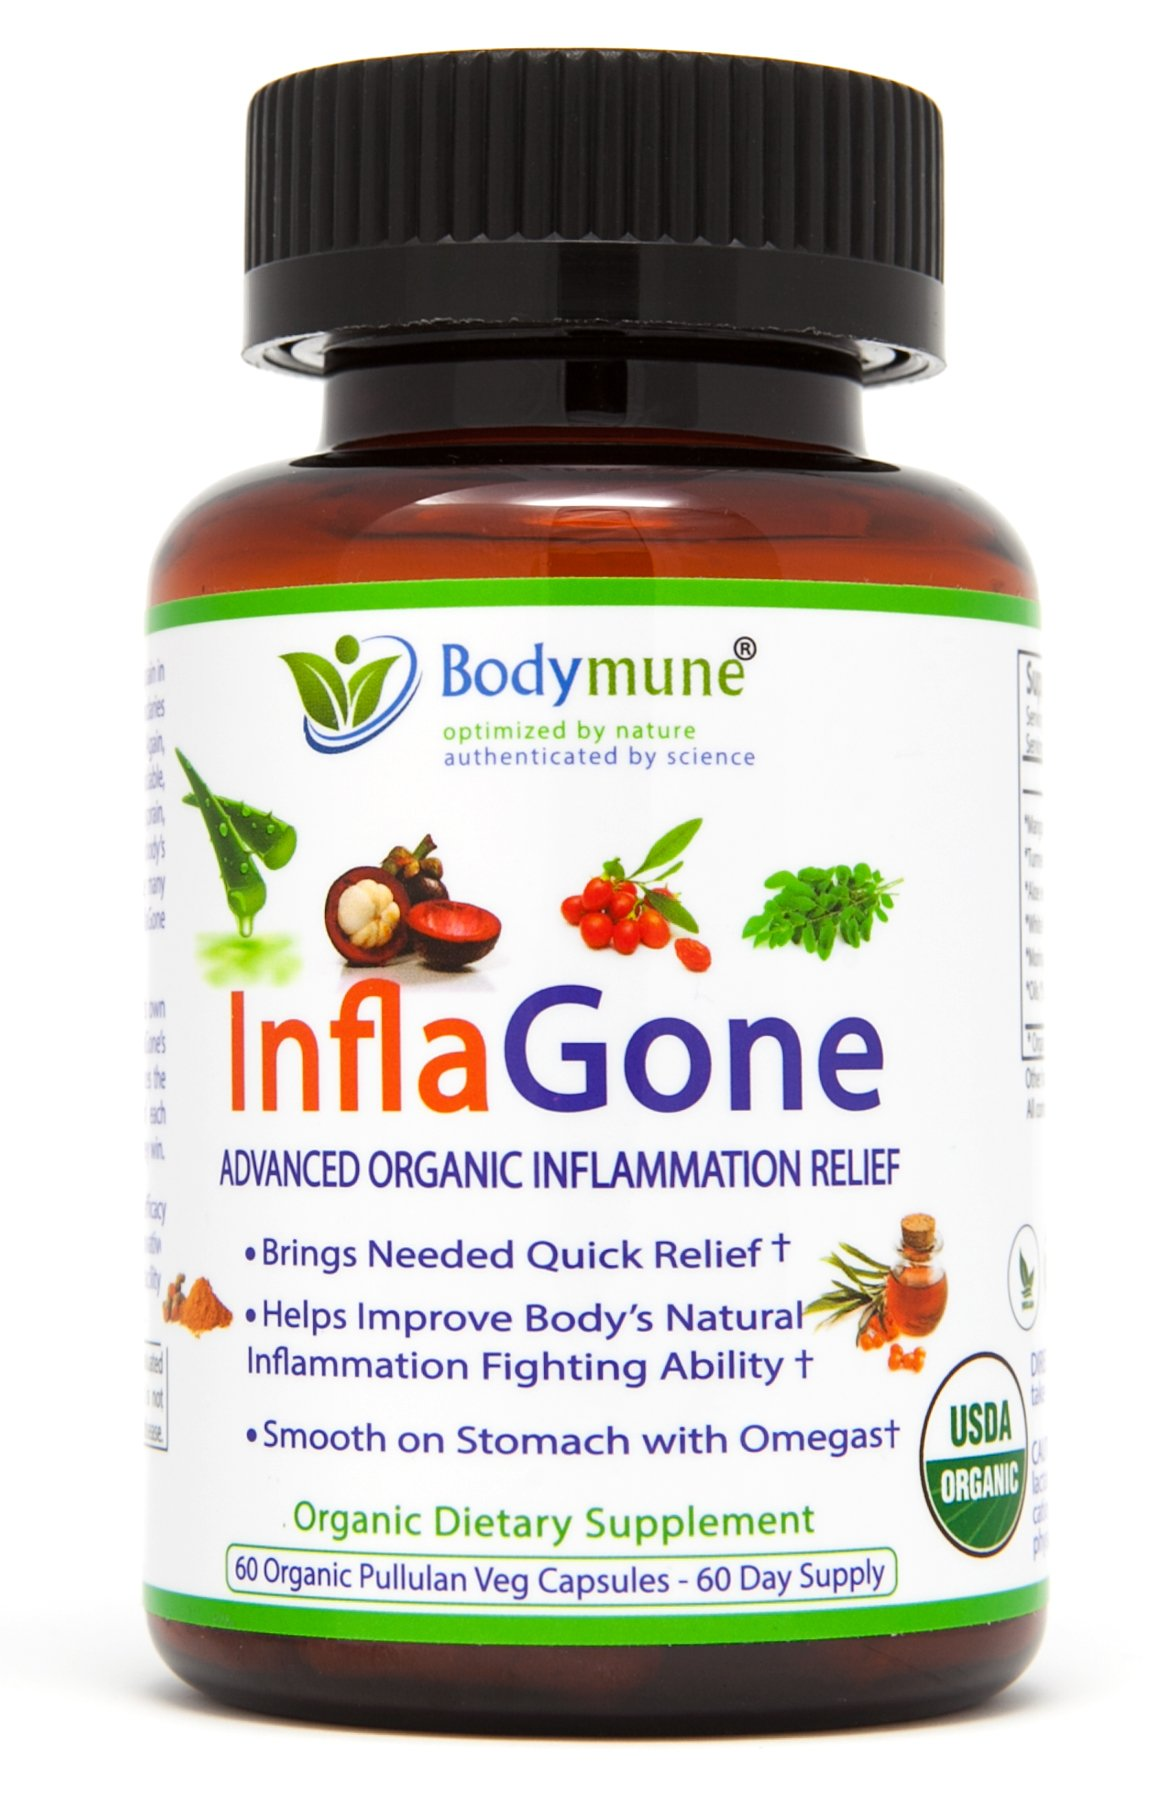 Anti-Inflammatory Pain Relief Back Pain Carpal Tunnel Sciatica Pain Relief Muscle Pain Head Ache Effective Nutritional Support Synergistic Blend by Bodymune | Organic All Natural Gluten Free 60 Caps